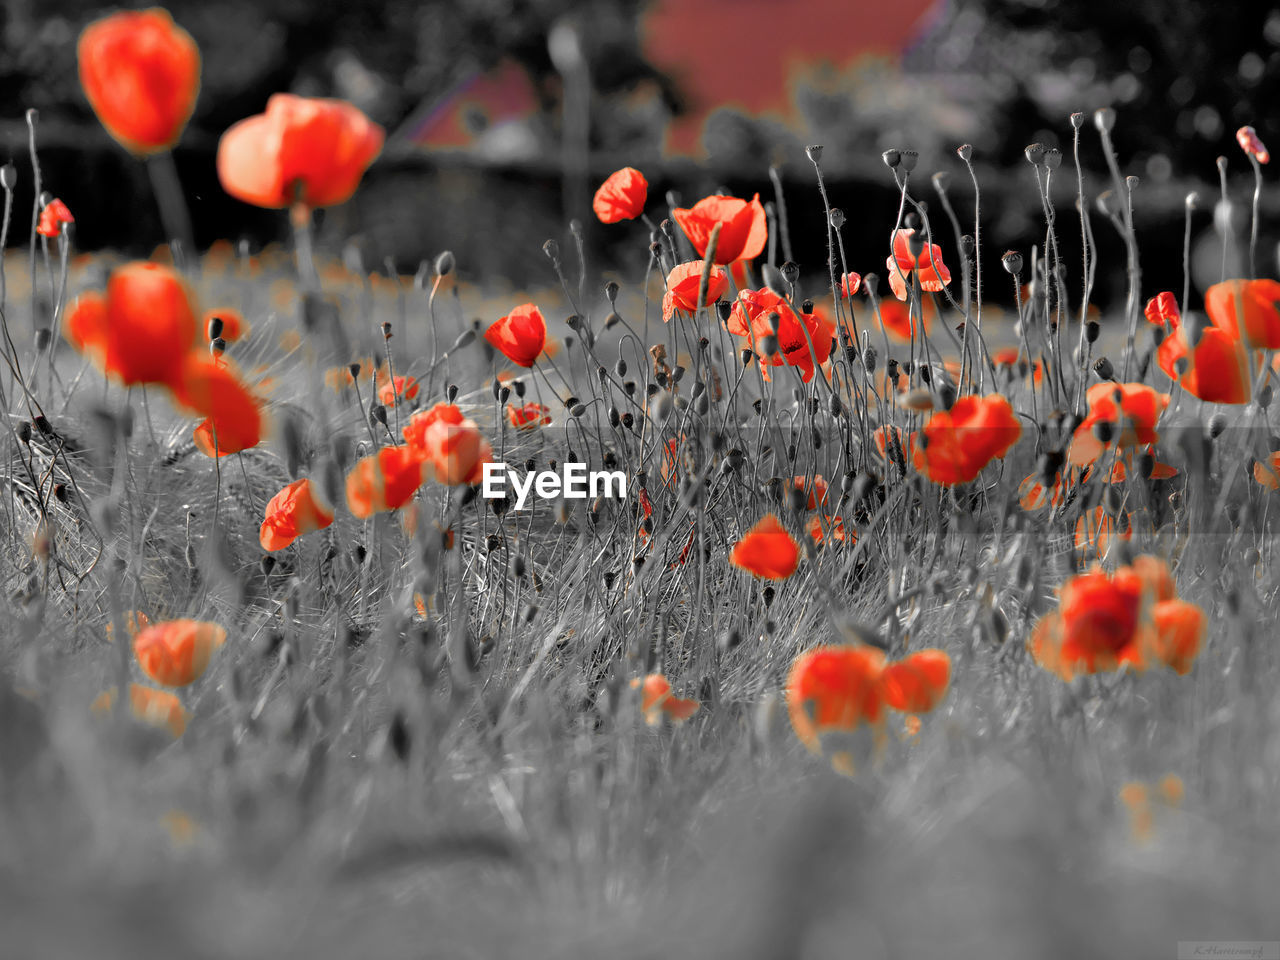 orange color, red, plant, growth, nature, selective focus, flower, no people, beauty in nature, outdoors, day, poppy, close-up, fragility, freshness